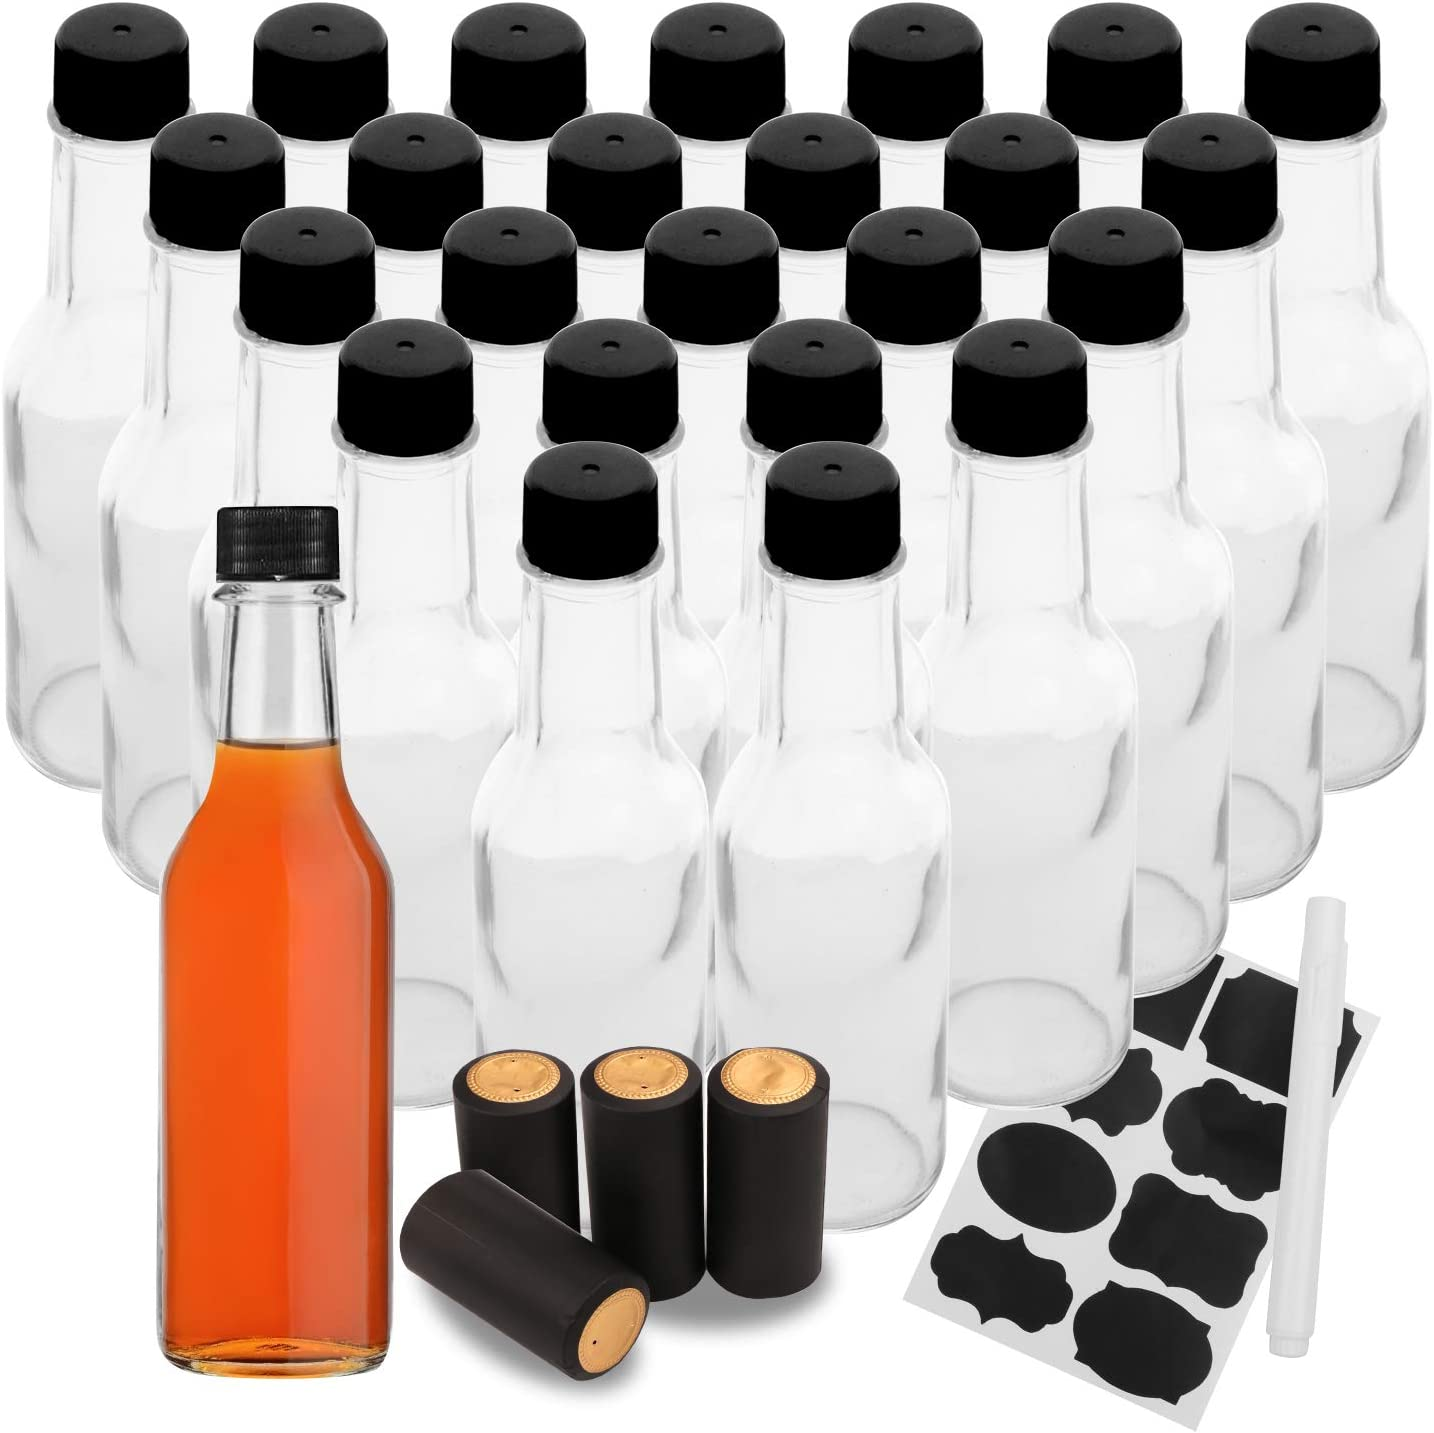 5oz 150ml Hot Sauce Bottles for Bottle Sales of SALE items from new works Glass Oil Clear Austin Mall